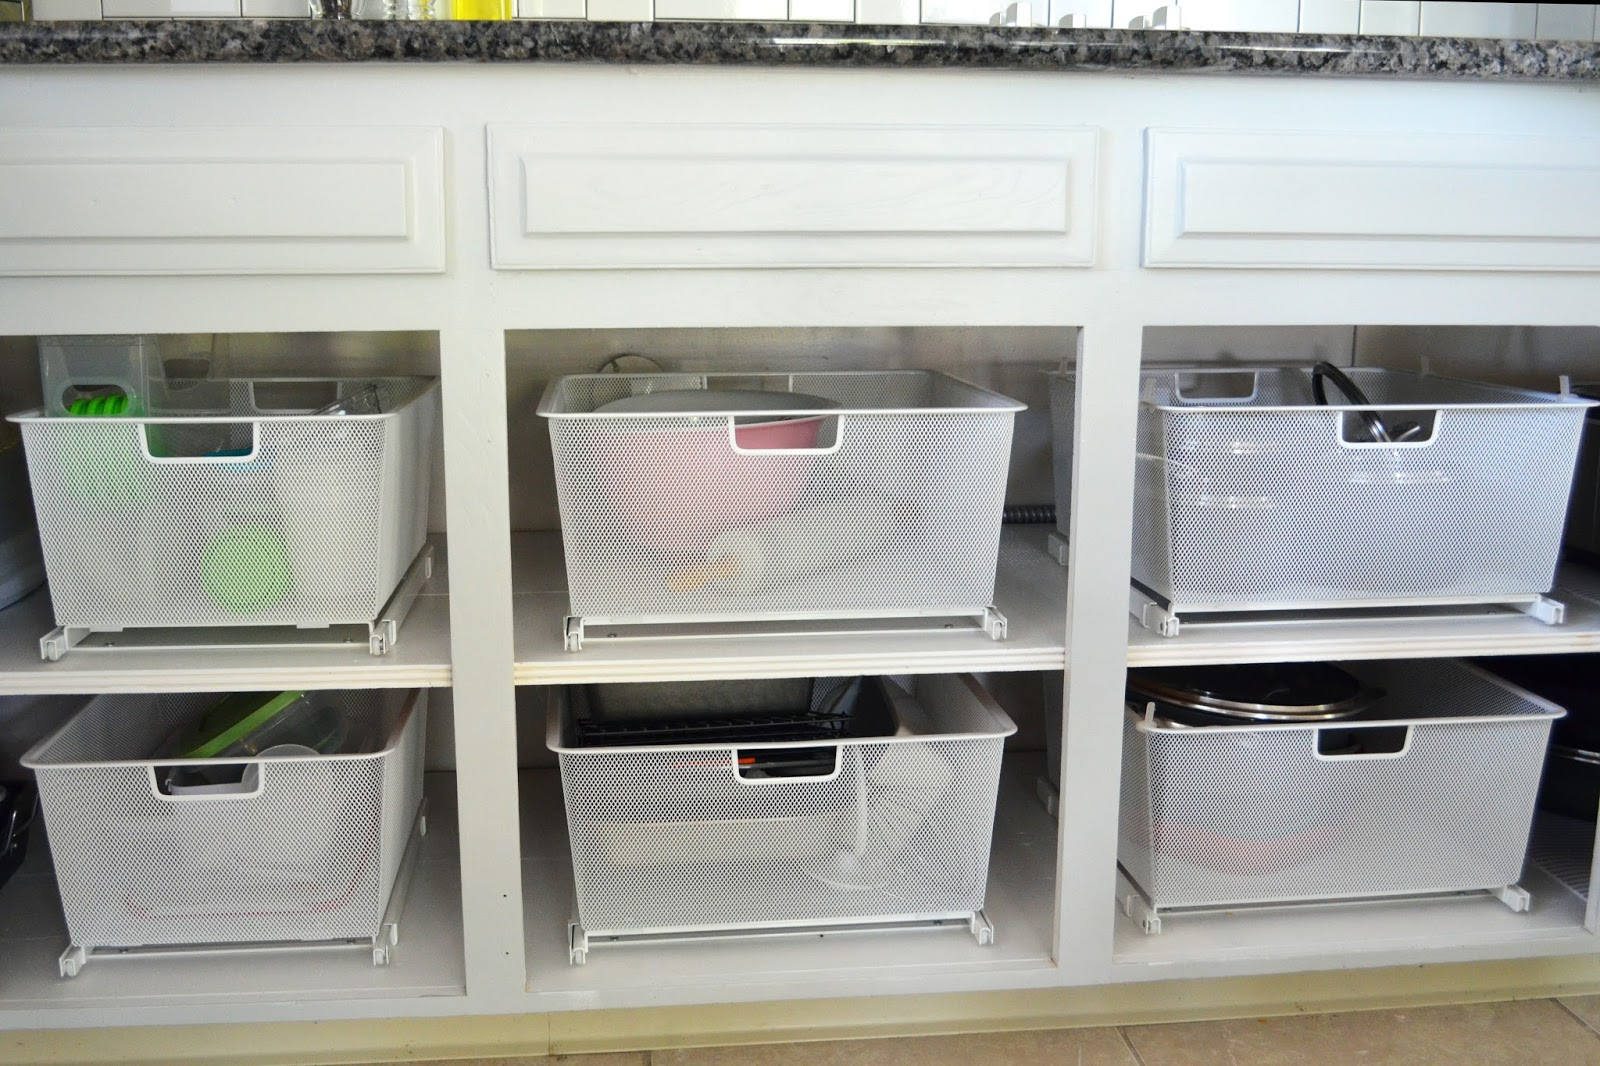 Stacy charlie kitchen cabinet organization Kitchen cabinet organization systems